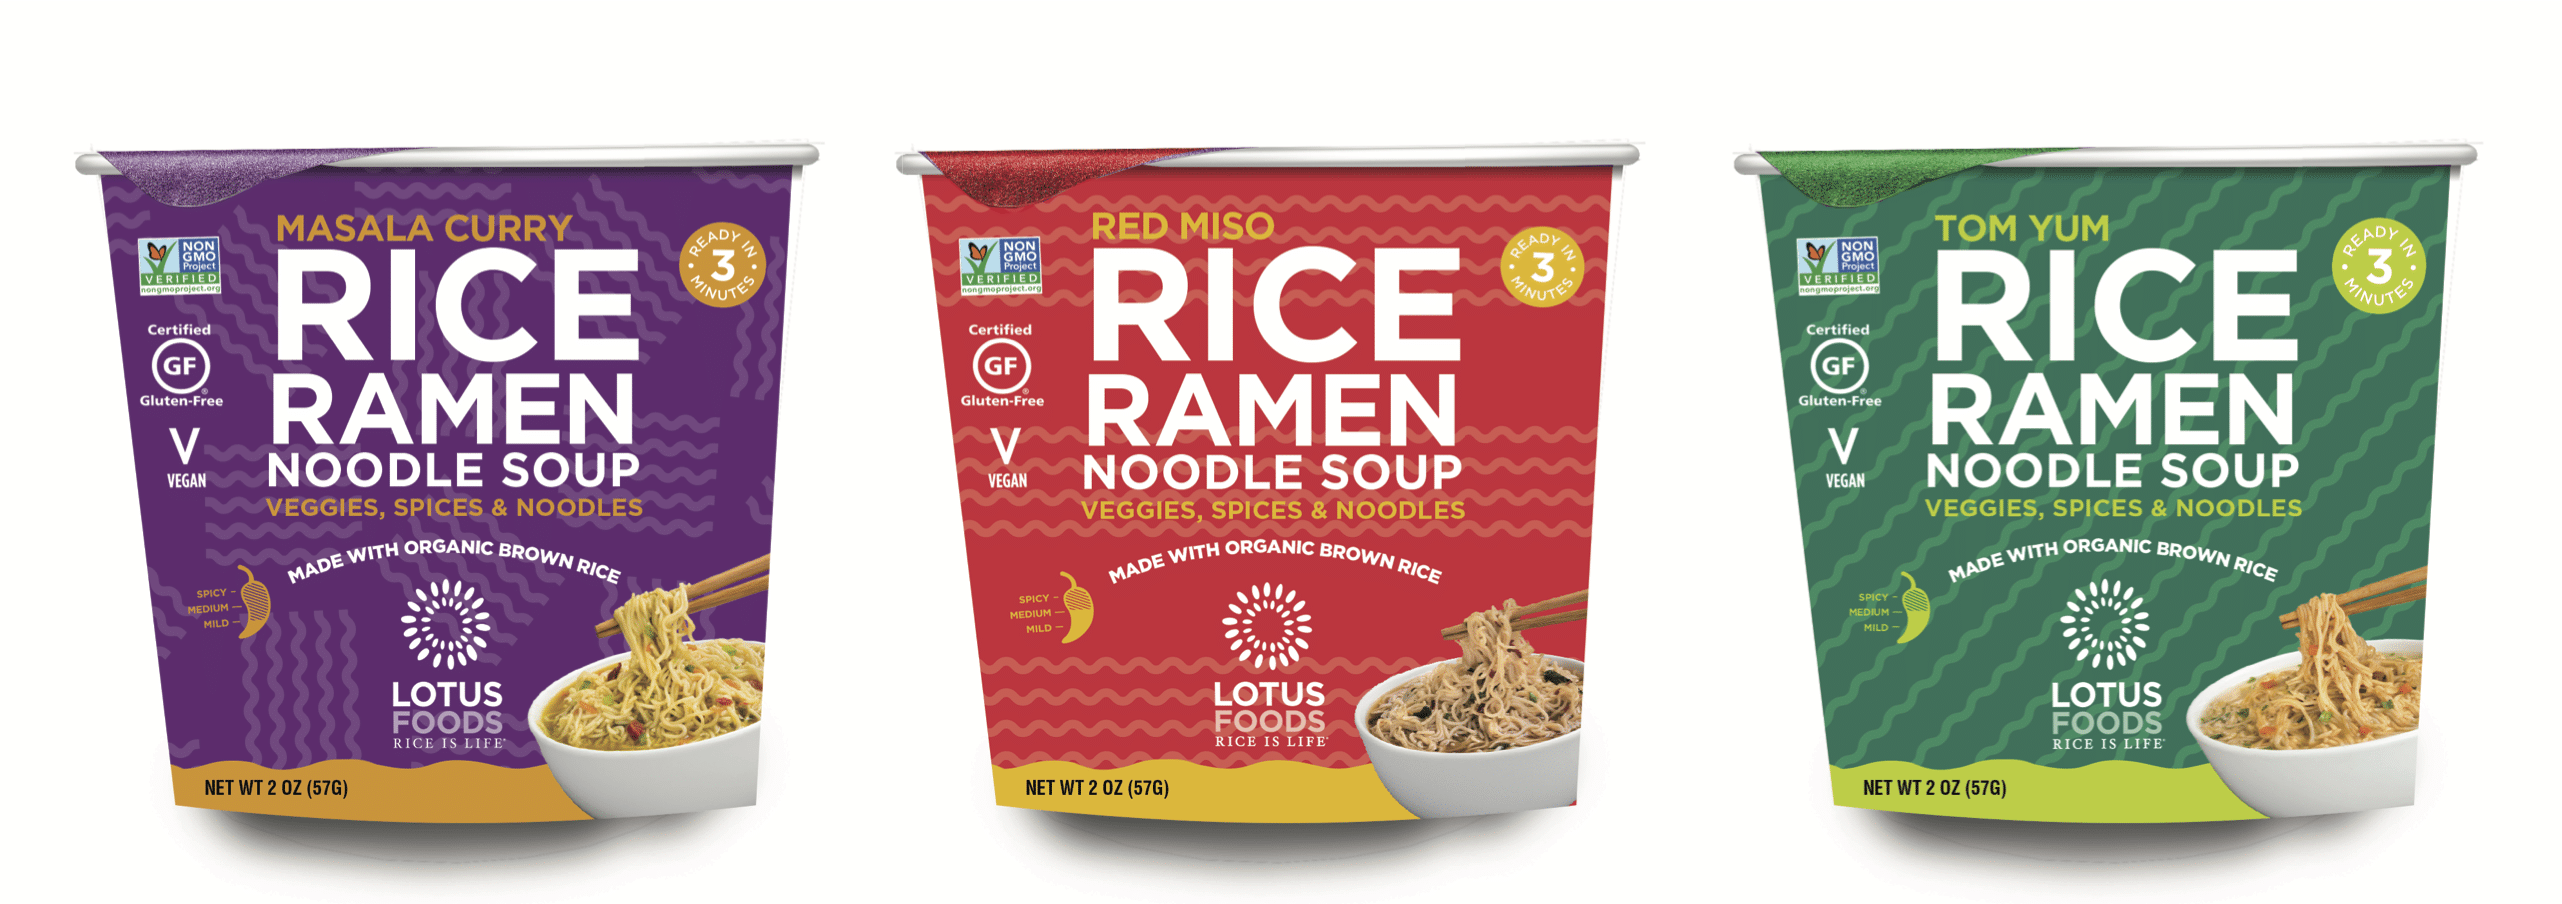 Lotus Foods Launches New Microwaveable Cup